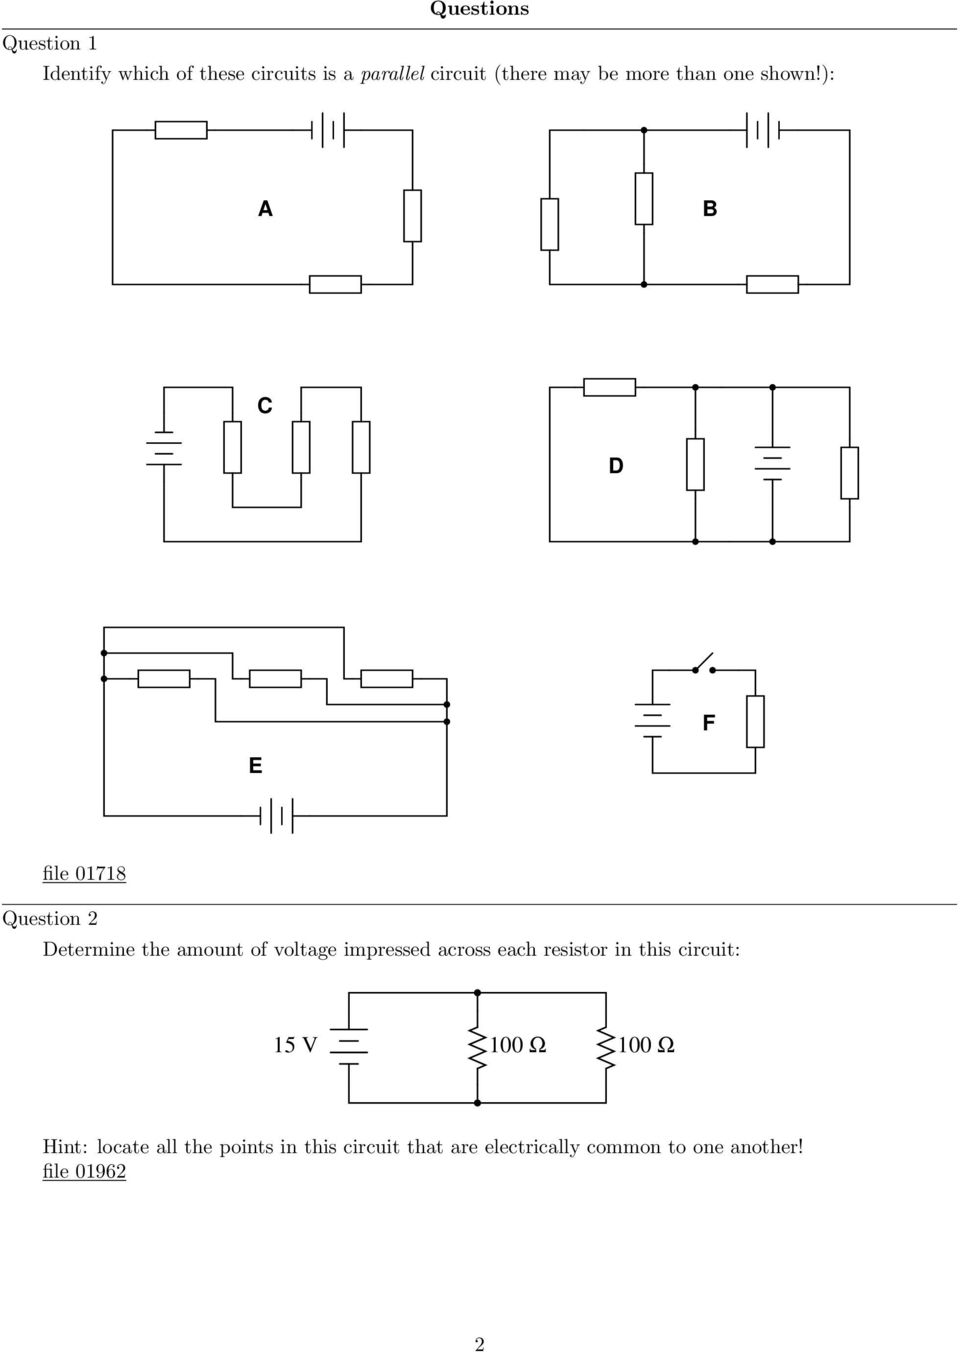 Parallel Dc Circuits Pdf Resistors Simple Voltage Divider Question Electrical Engineering A B C D F E File 01718 2 Determine The Amount Of Impressed Across